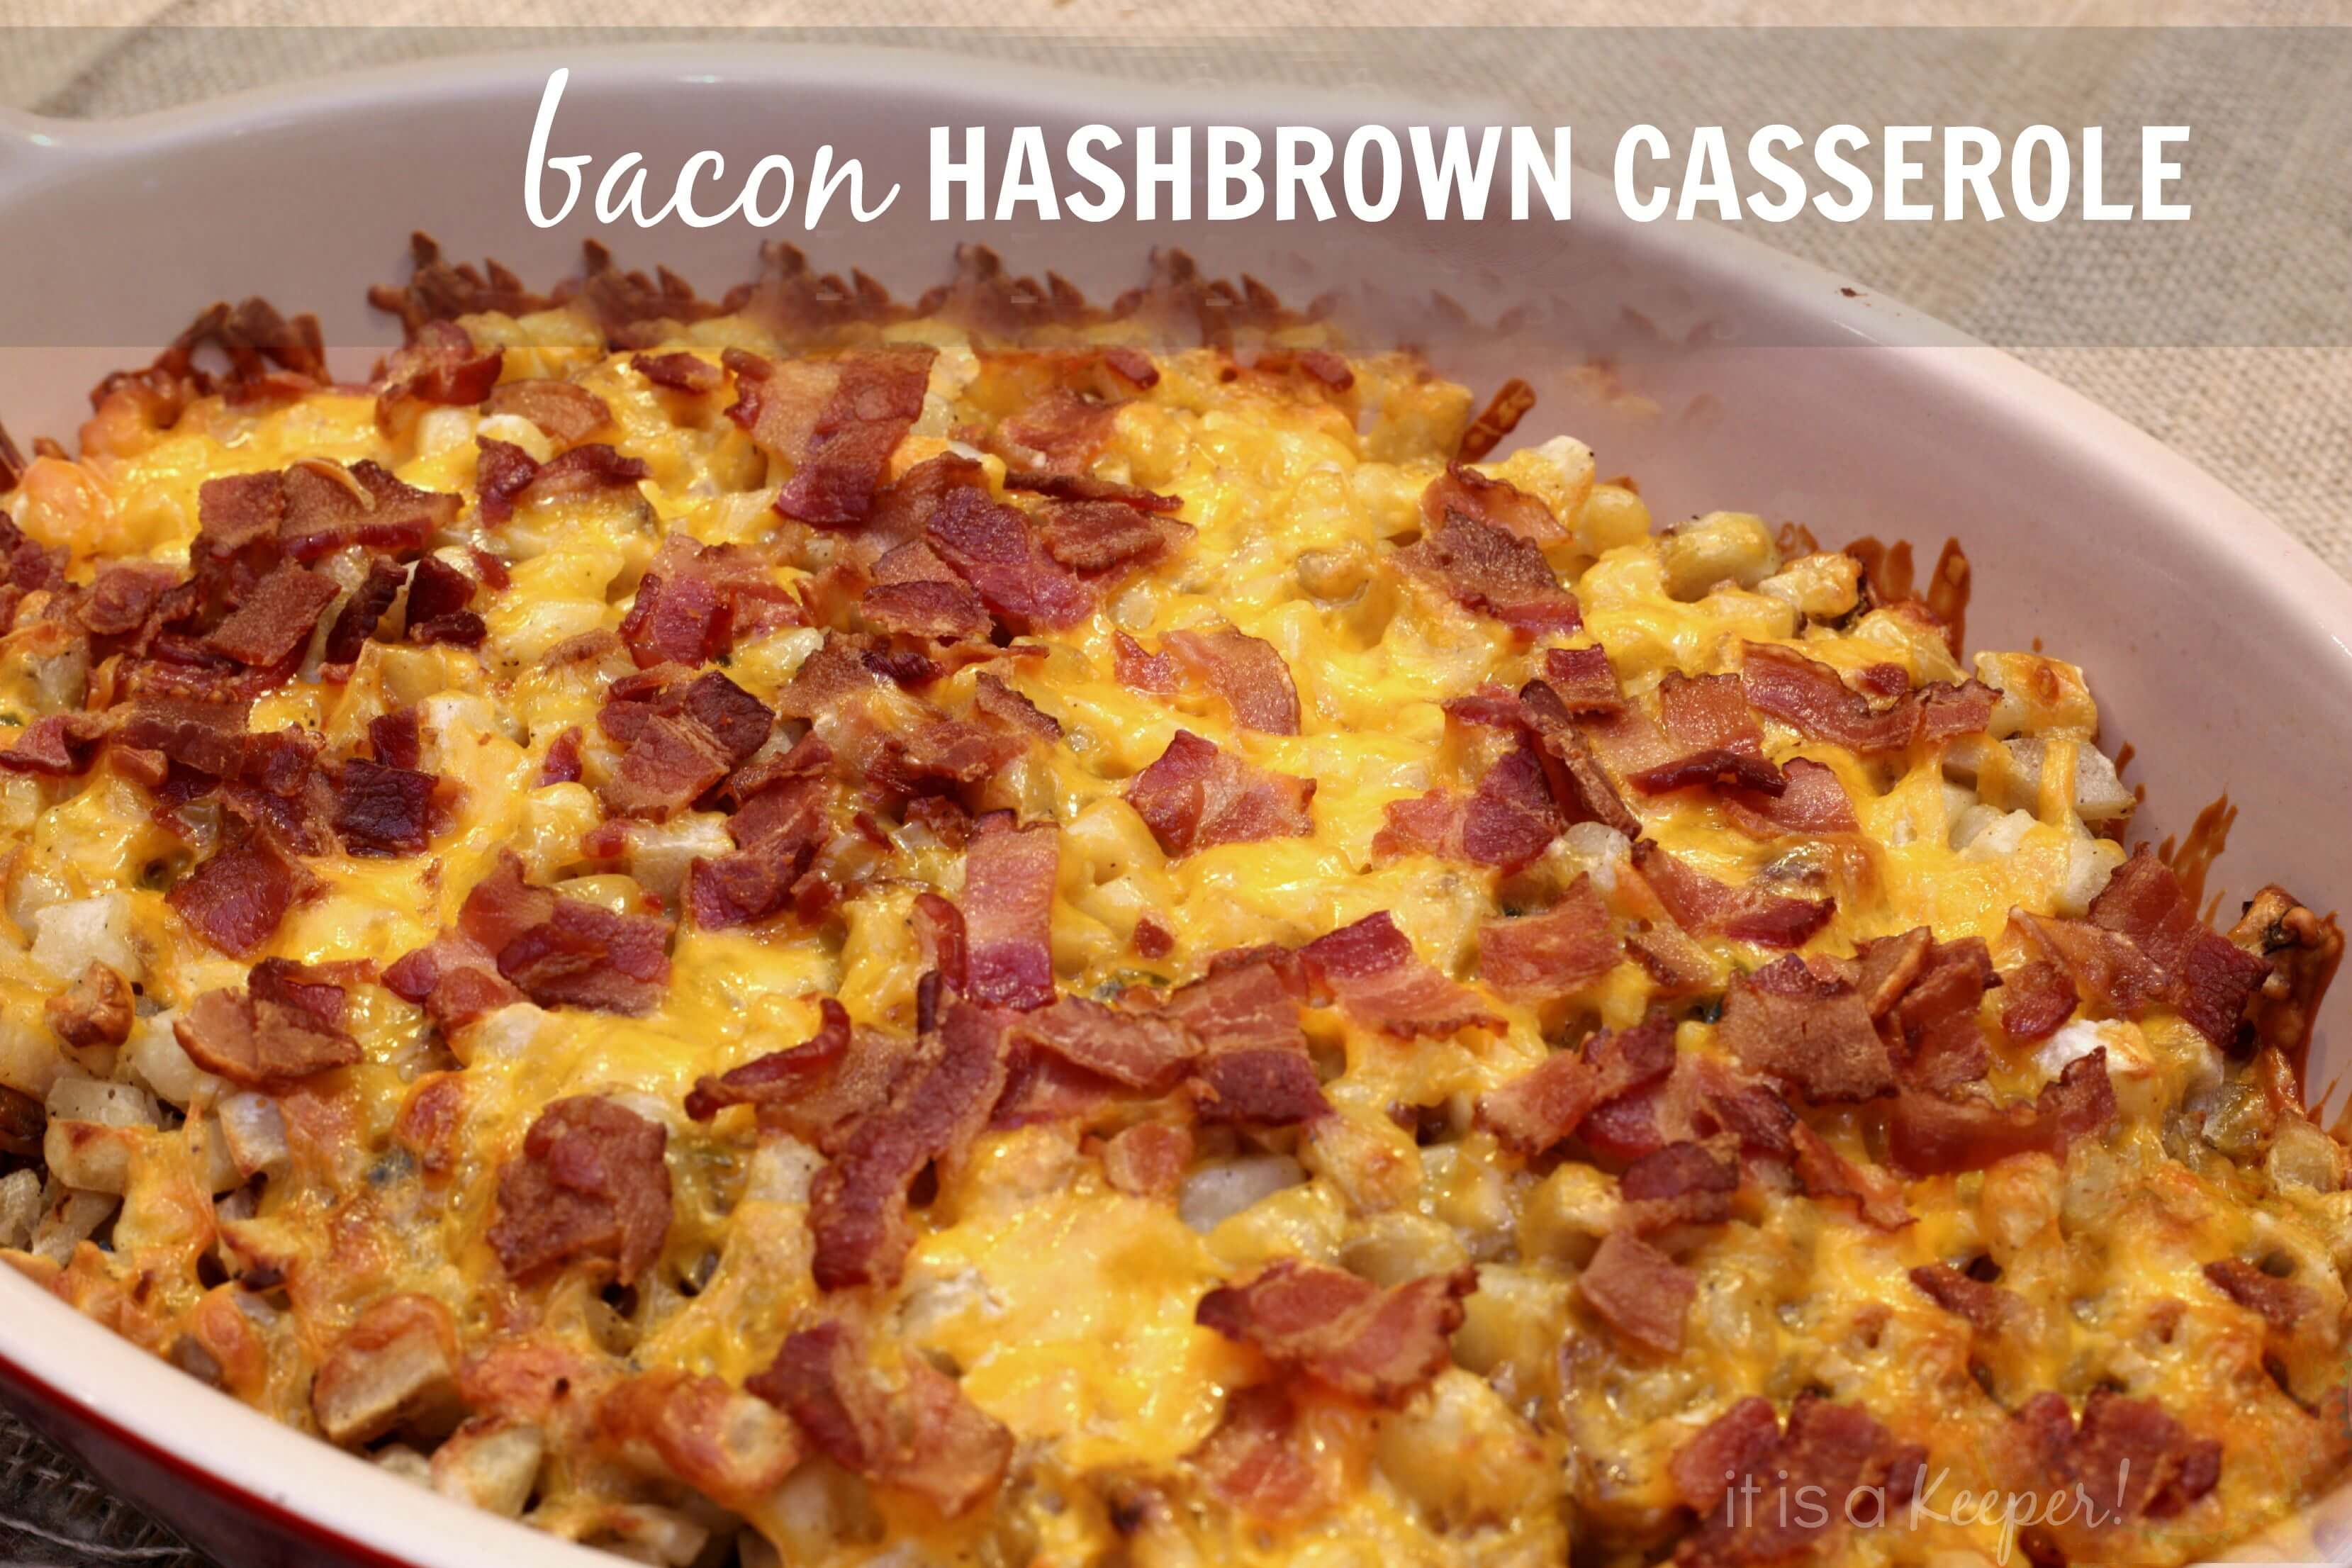 recipe: overnight breakfast casserole with hash browns [26]